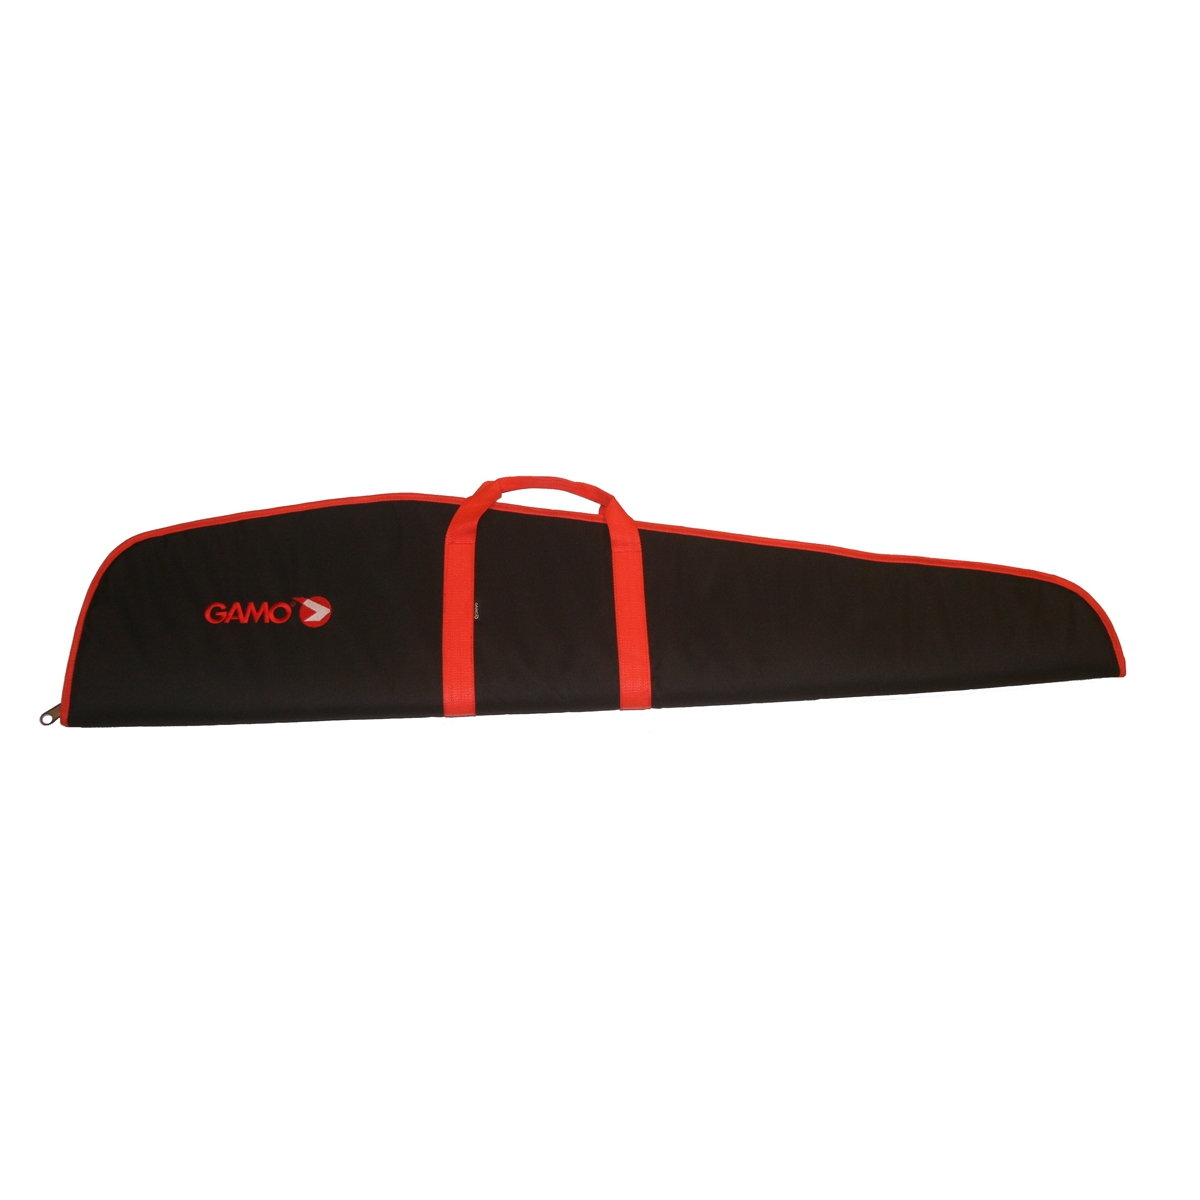 Case Gamo For Carbine With Viewfinder, 120 Cm Long, Red Color And Black, 6212367